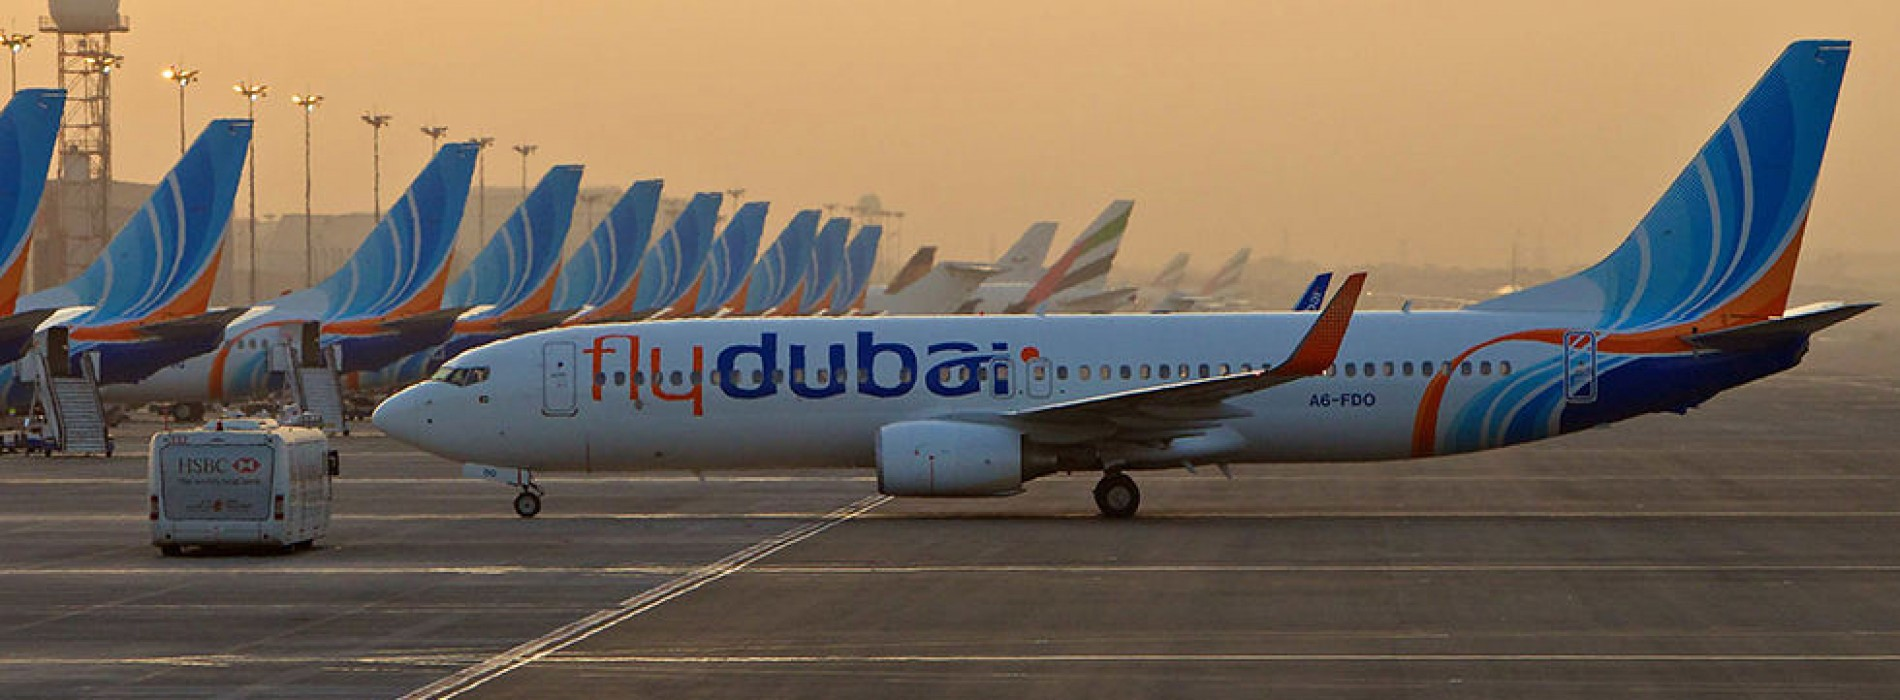 flydubai's network in Russia expands to ten destinations